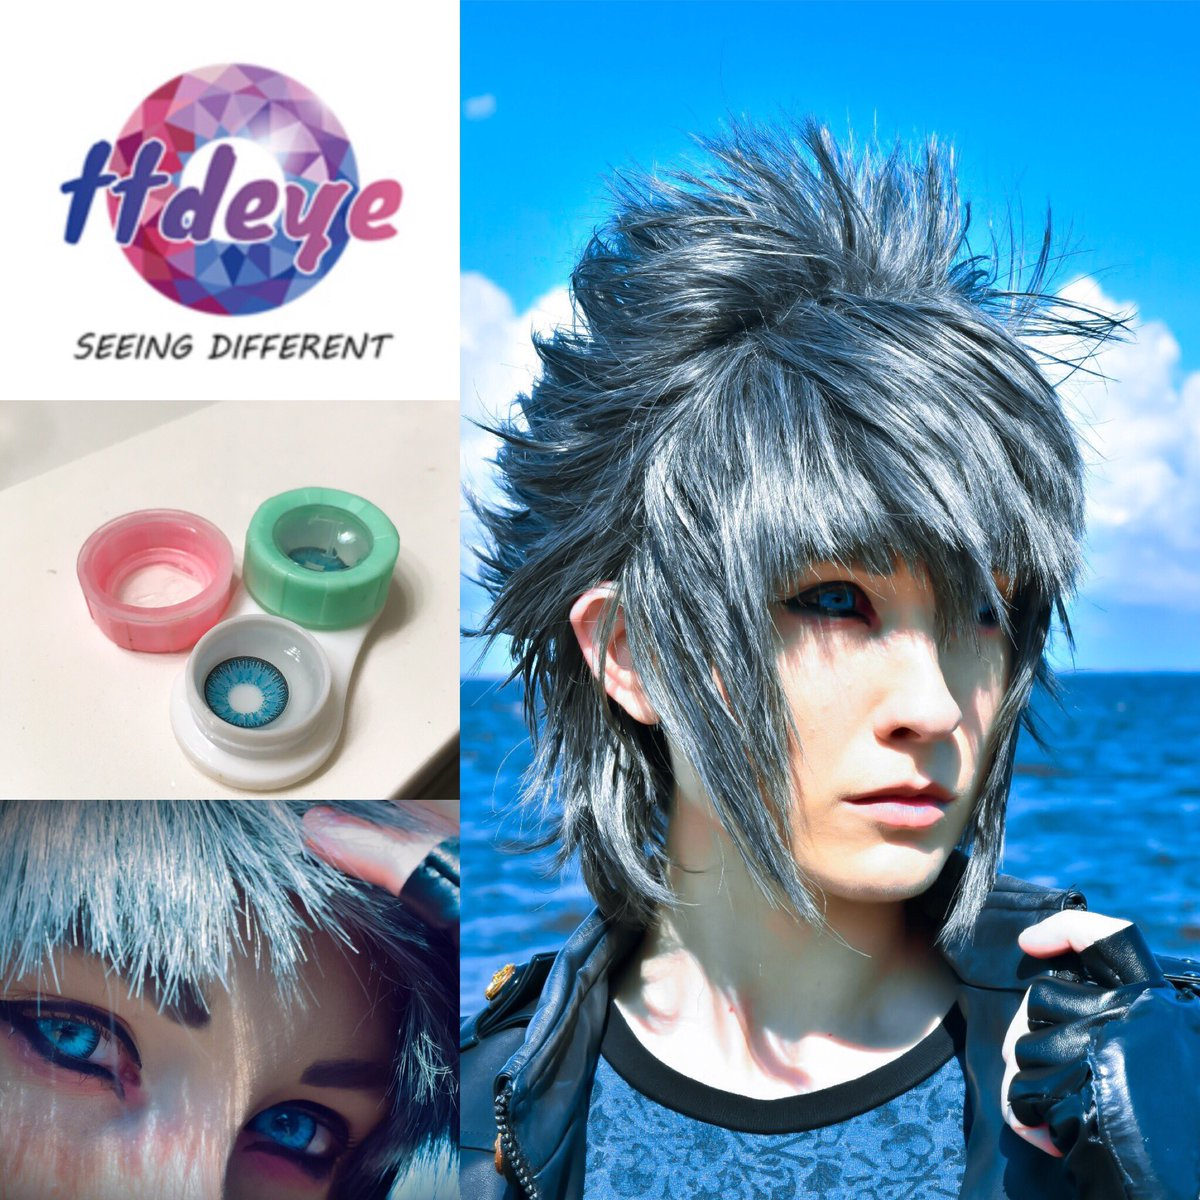 Just in case anyone needs some lenses, I currently have a 10% off code with ttdye code: ILcosplay   #cosplay #ffxv #ttdye #contacts <br>http://pic.twitter.com/pKWk2nnpht